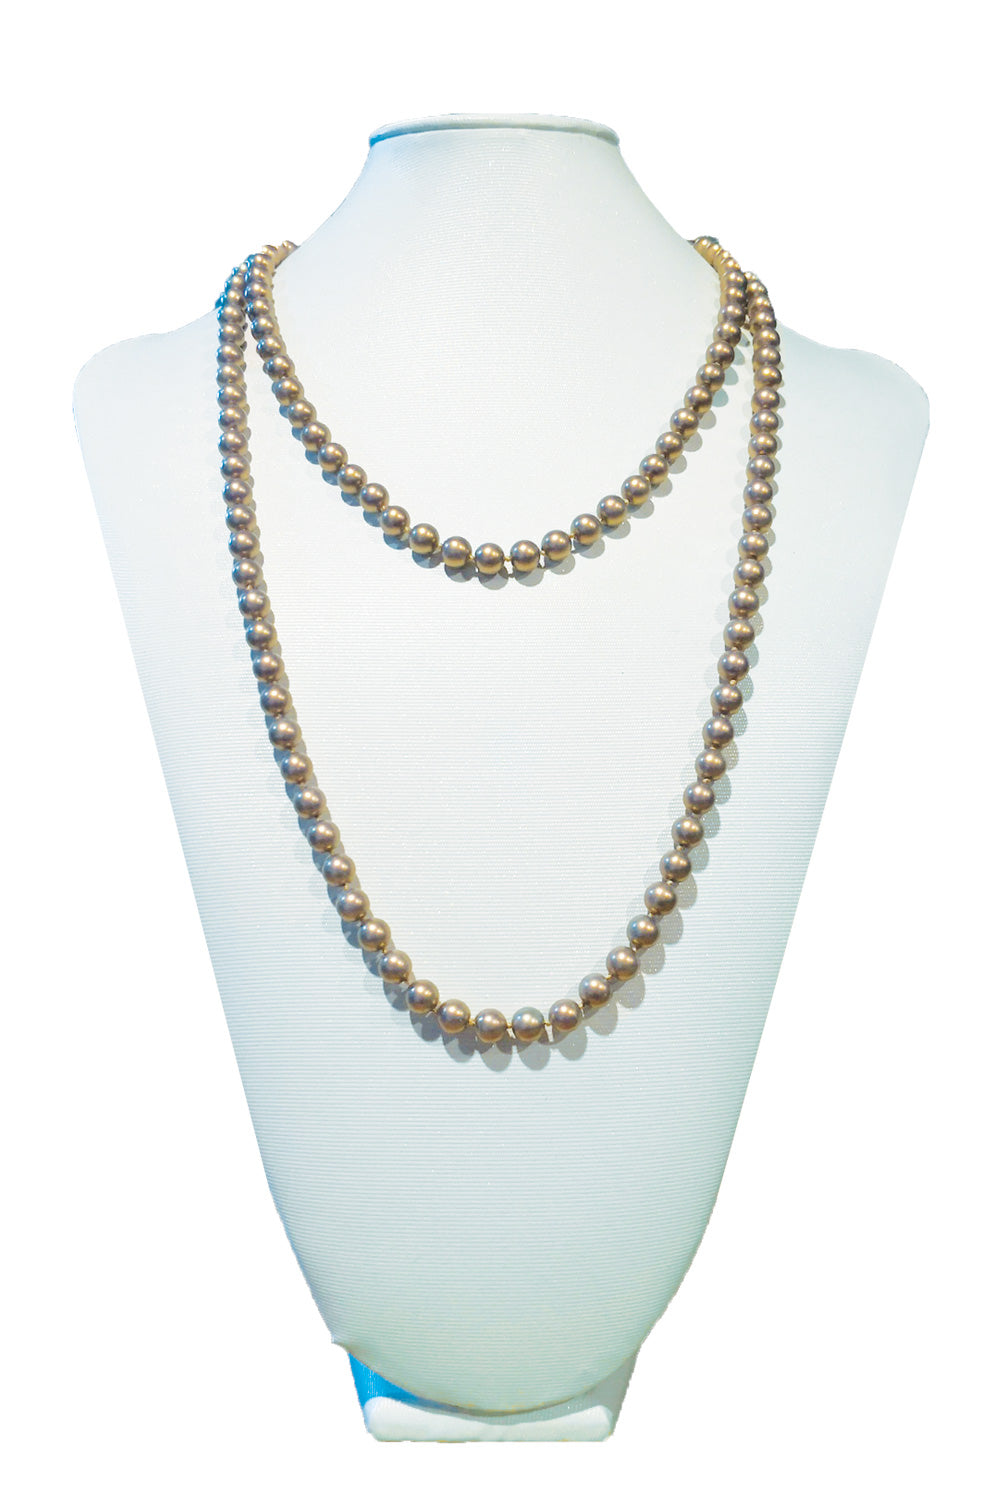 Bronze Matte Costume Pearl Necklace | Annah Stretton | Designer Accessories